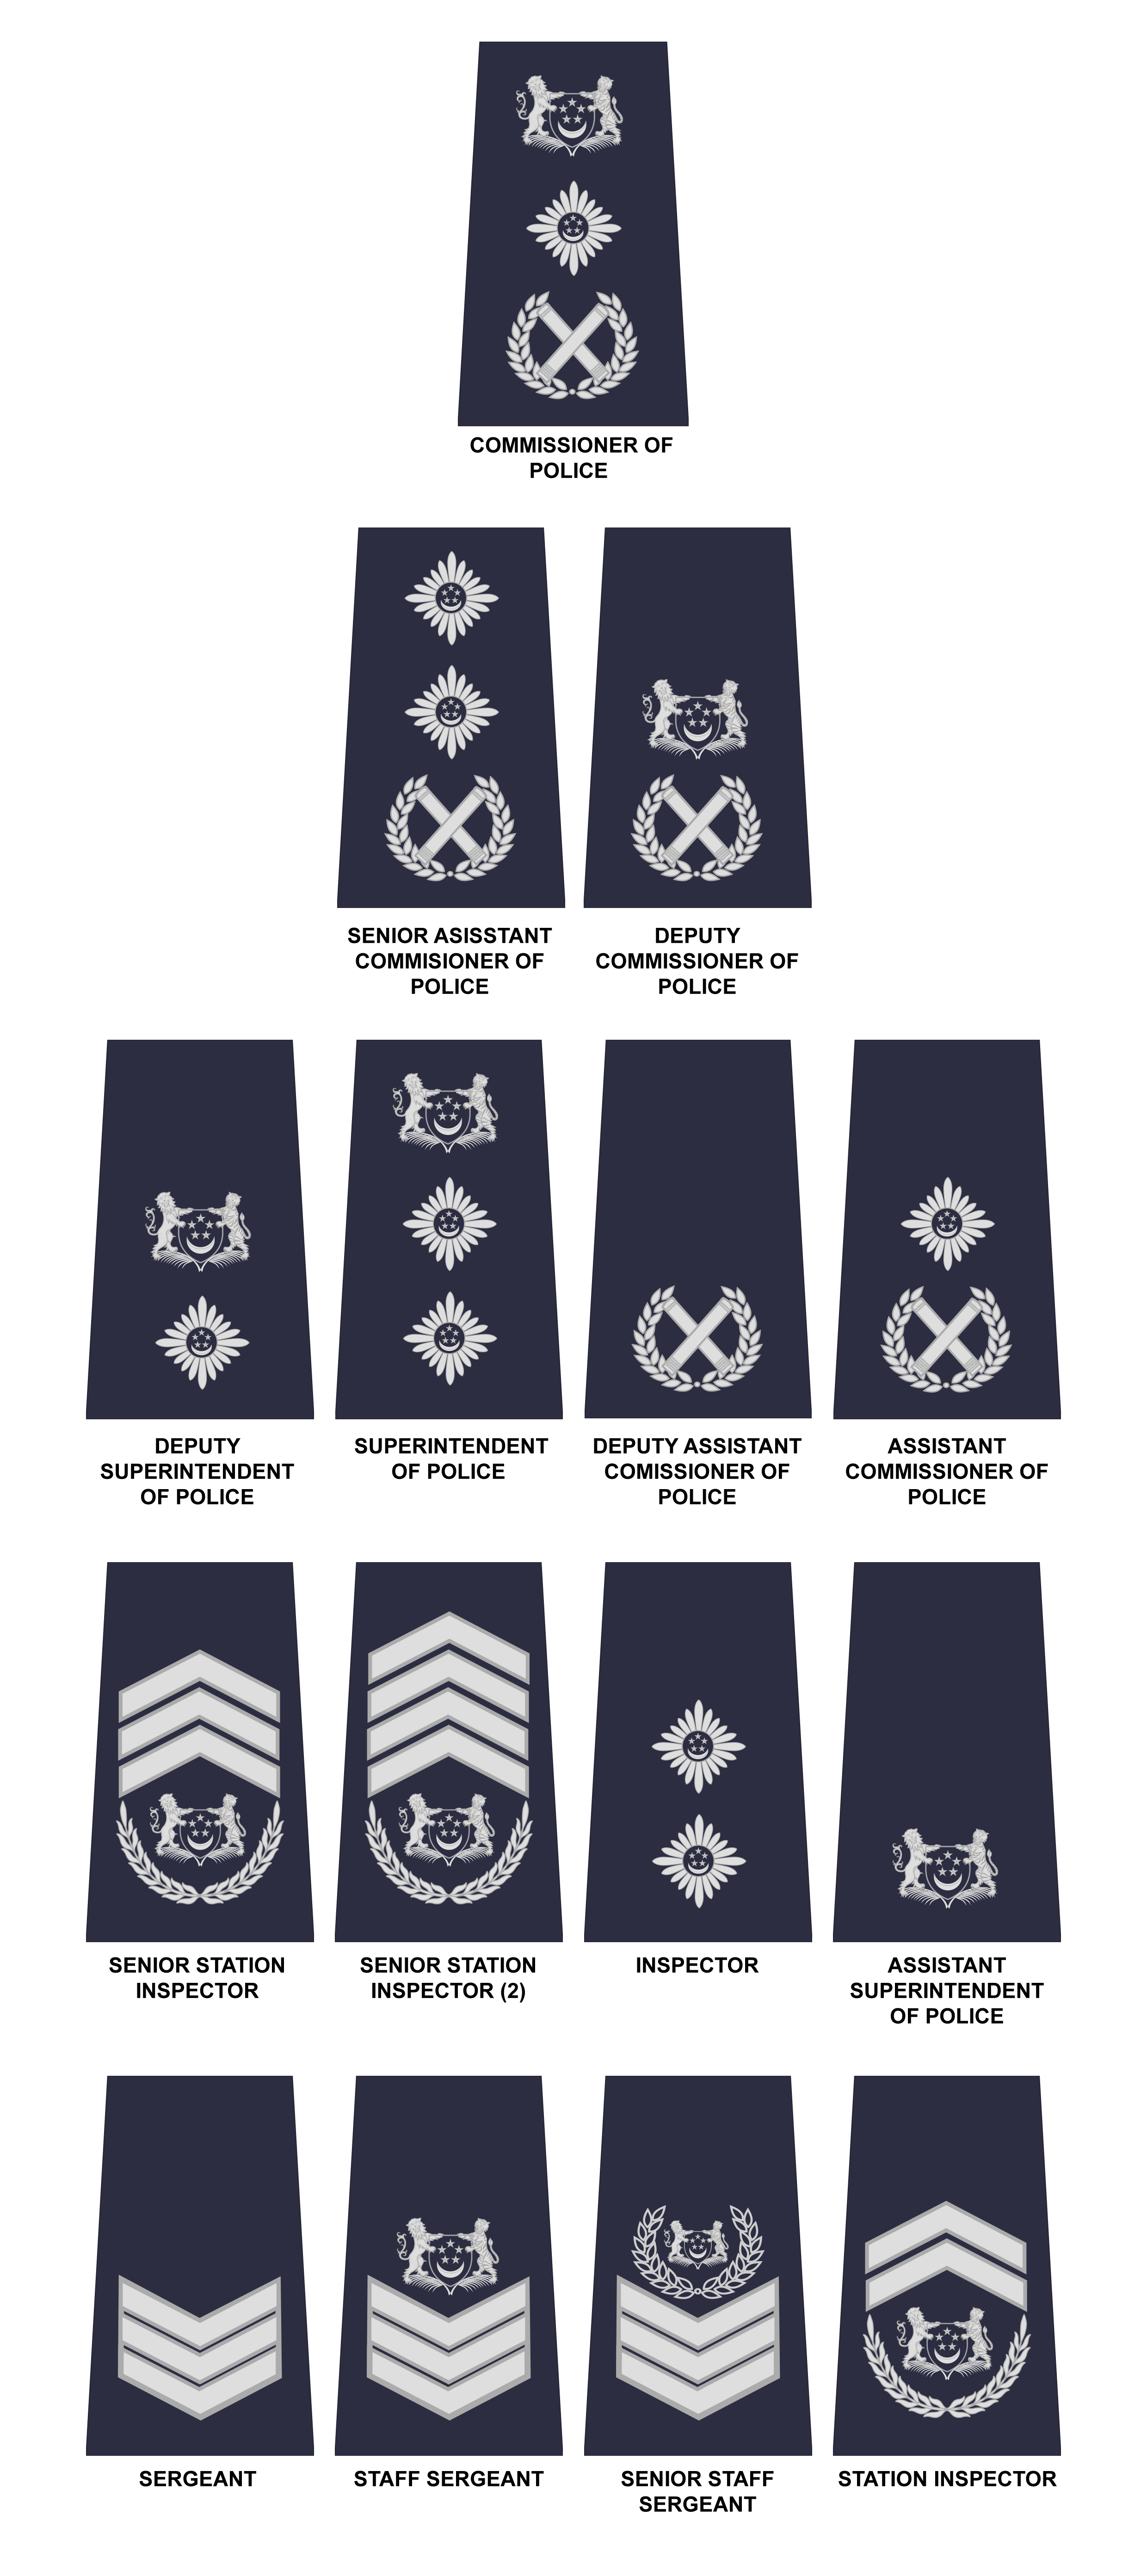 Rank Structure of Singapore Police Force